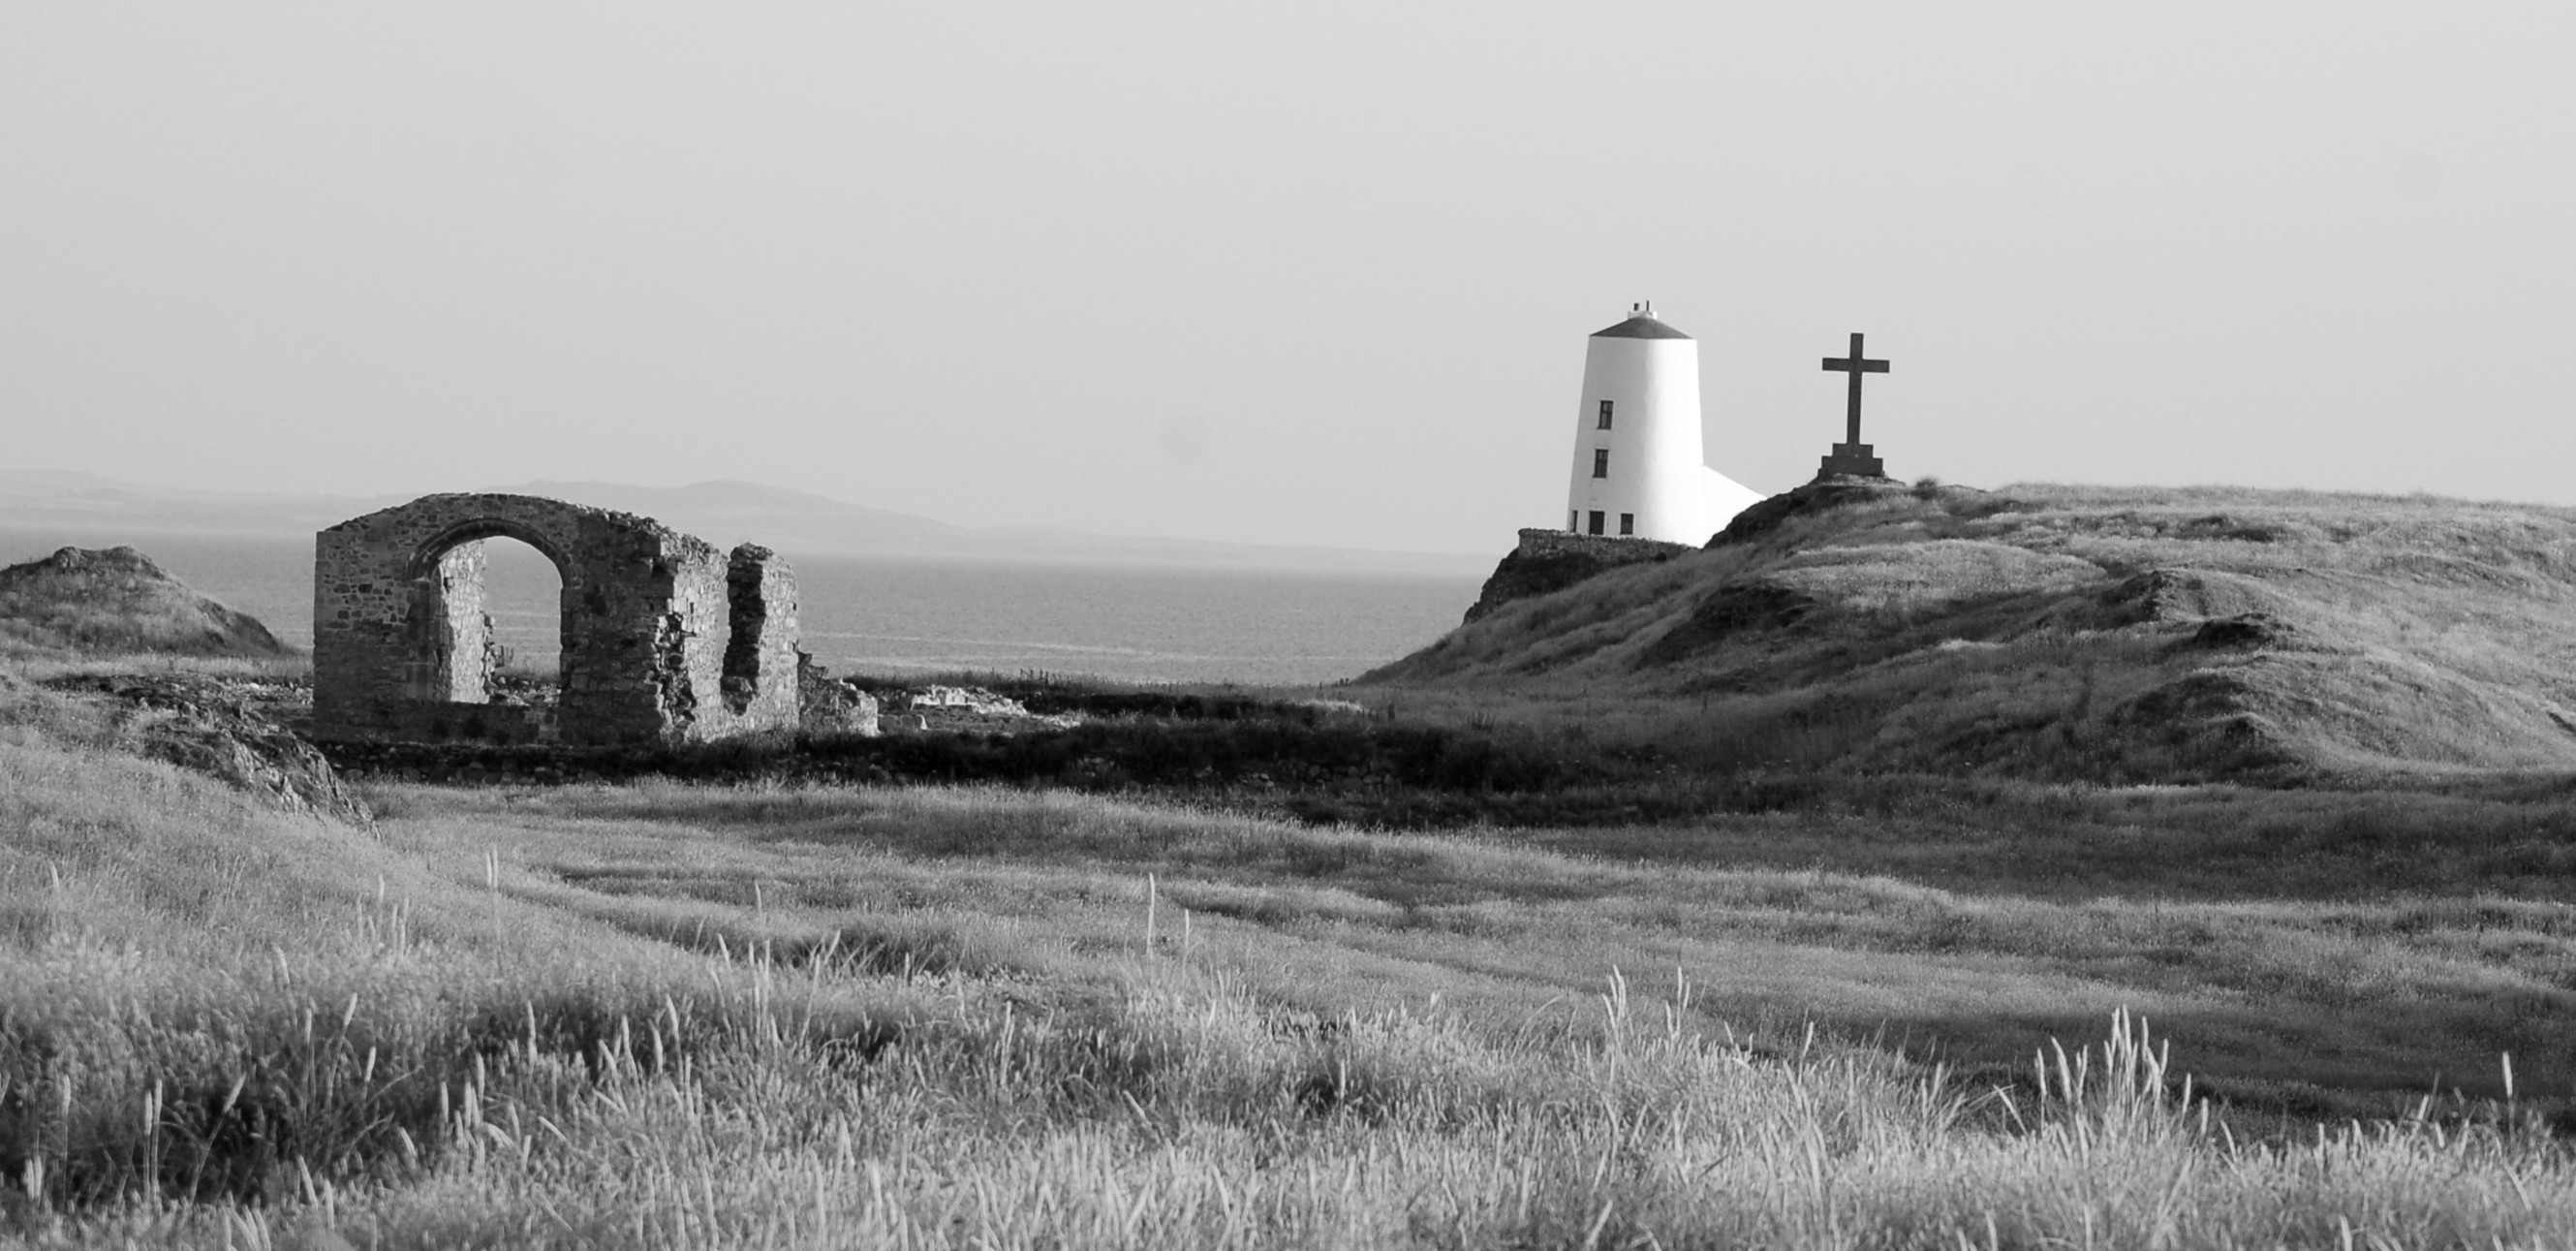 http://rhosyr.co.uk/wp-content/uploads/2017/01/LLANDDWYN-JULY-18-2013-080.jpg